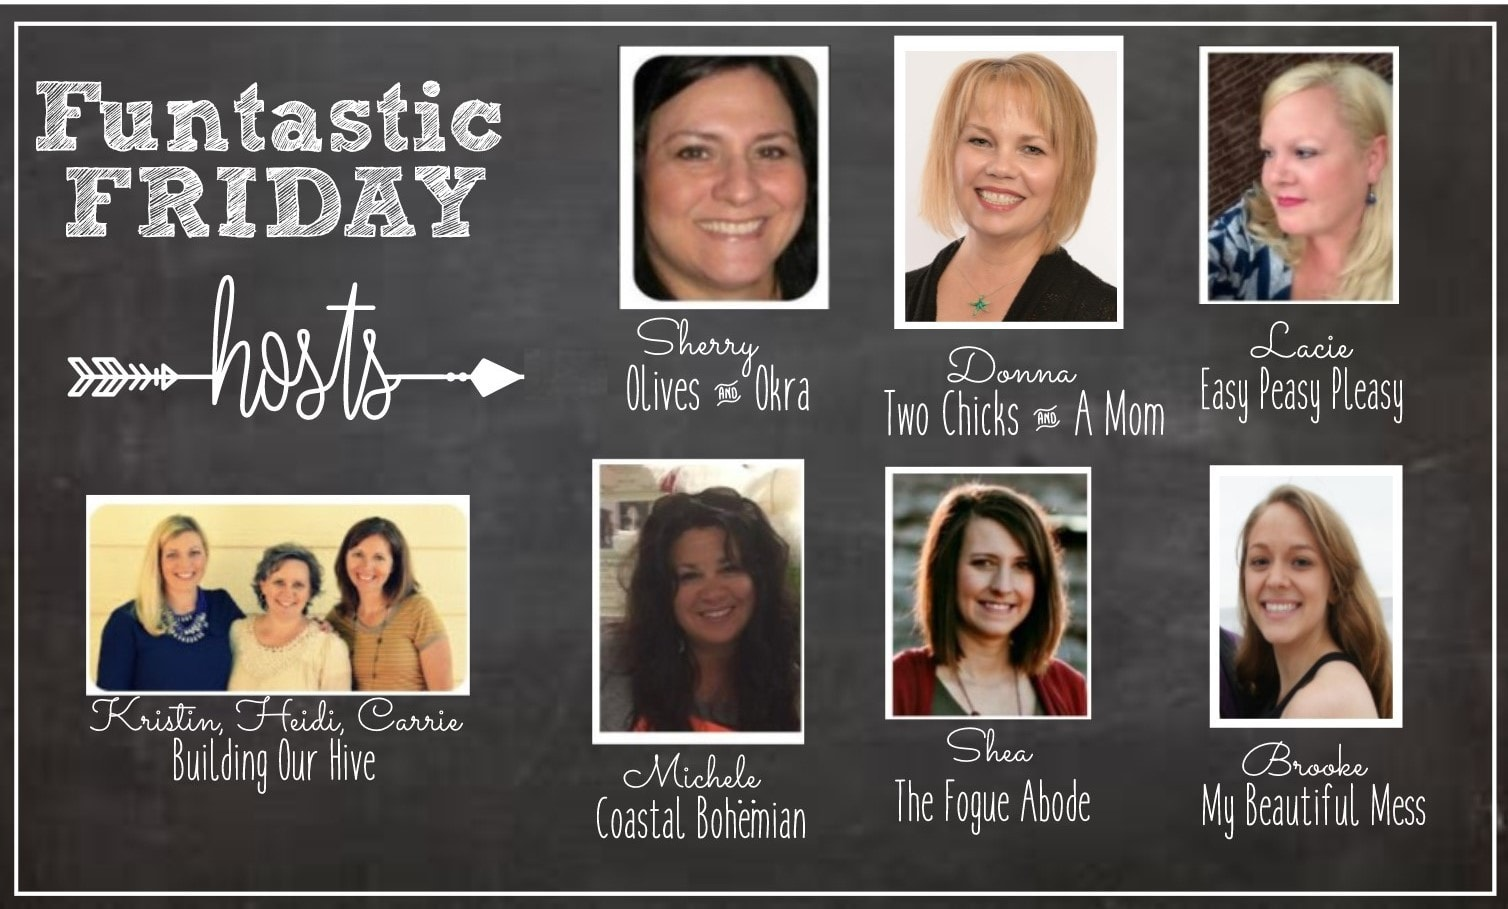 Funtastic Friday Link Party Hosts. Link up your best blog posts at www.easypeasypleasy.com